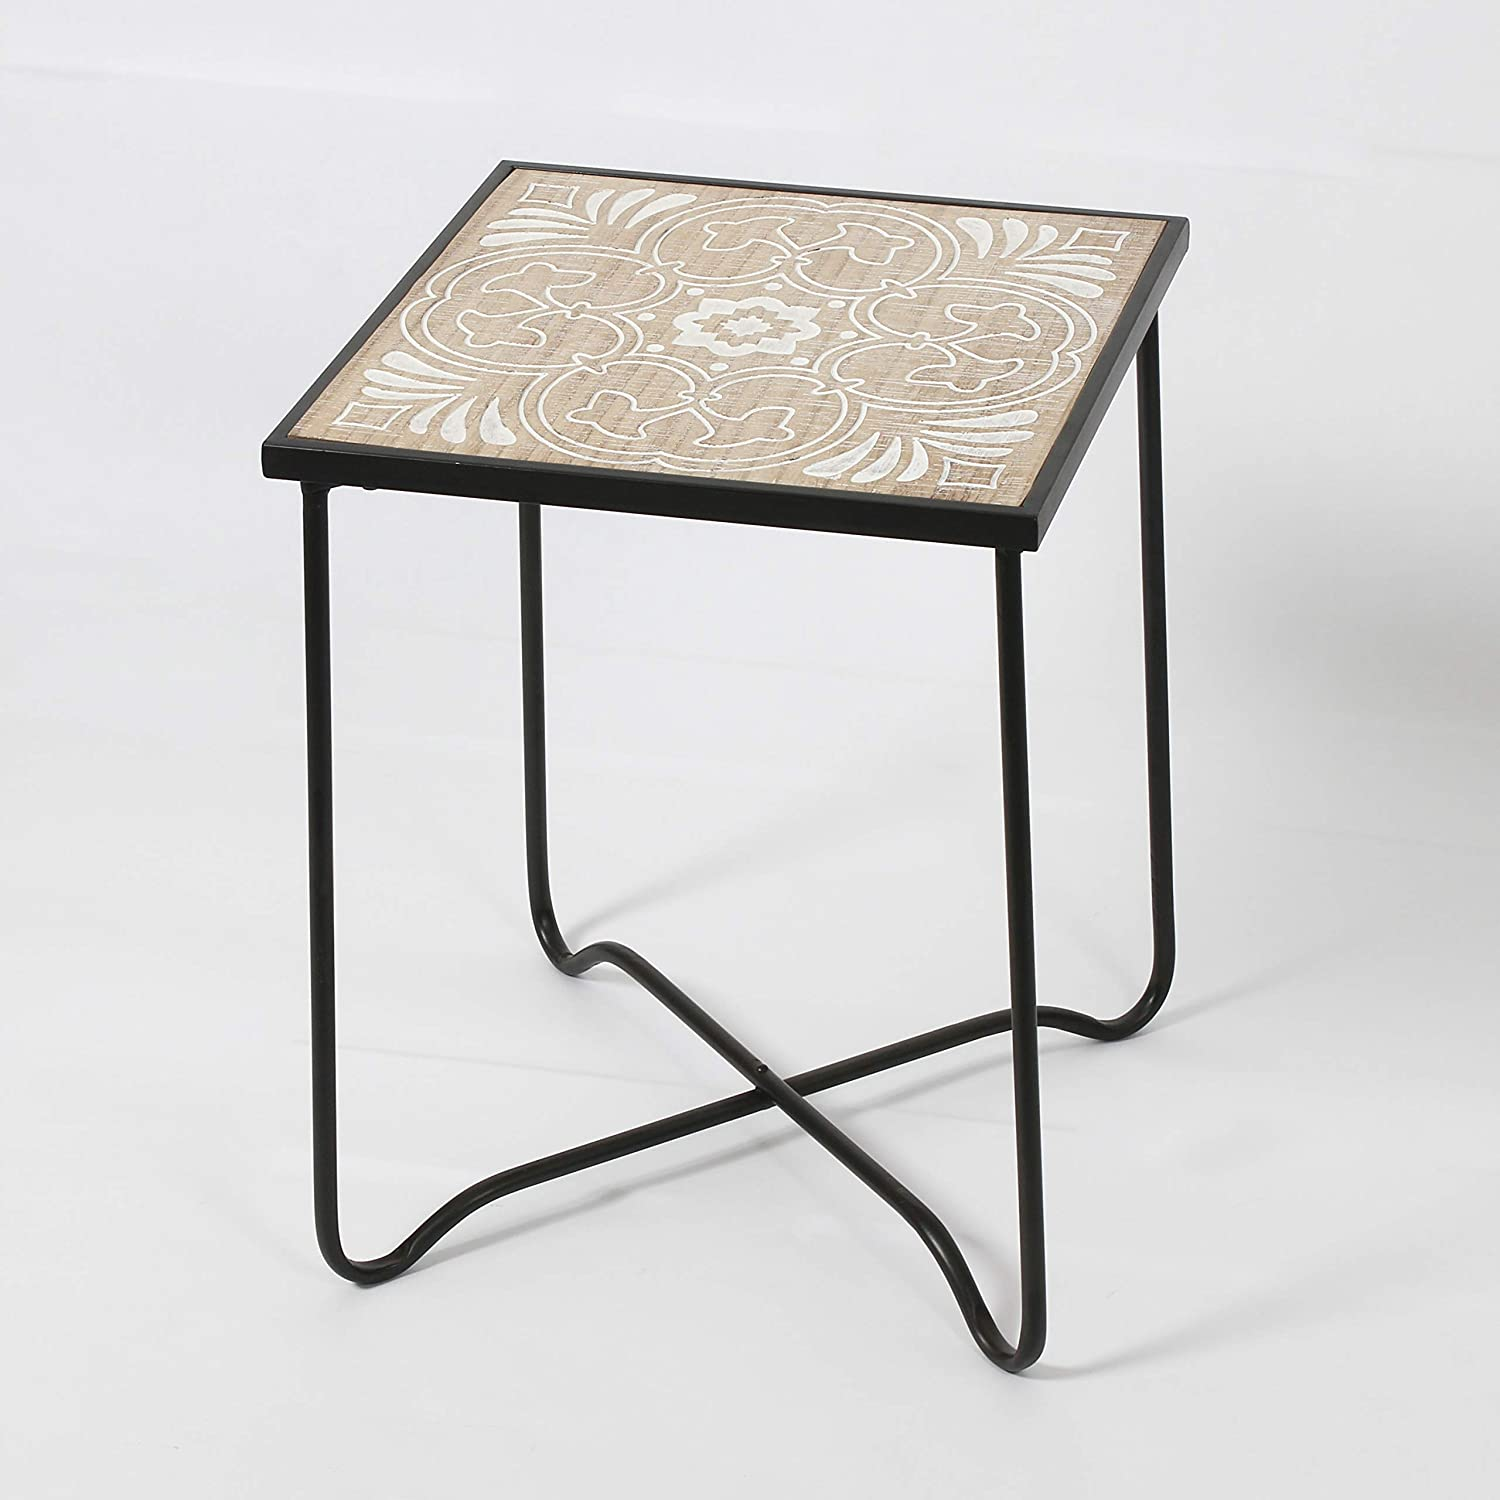 RHArt - Floral Pattern Square END Table, Country Vintage Farm Side Table, END Table, Coffee Table, NIGHTSTAND Display and Storage for Home, CONDO, Living Room, Bedroom Decor and Furniture